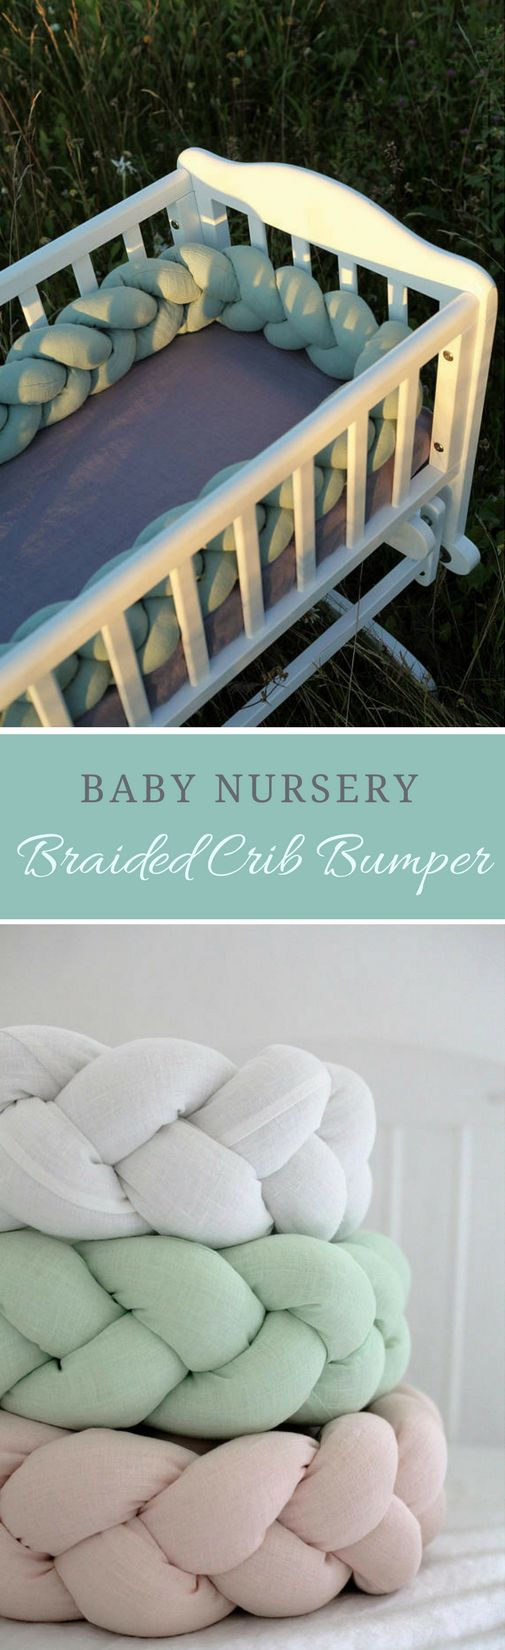 Beautiful linen crib bumpers, perfect for a neutral baby nursery! So precious! #ad #braidedbedbumper #babylinen #babybedbumper #babynursery #neutralnursery #babynursery #babynurserydecor